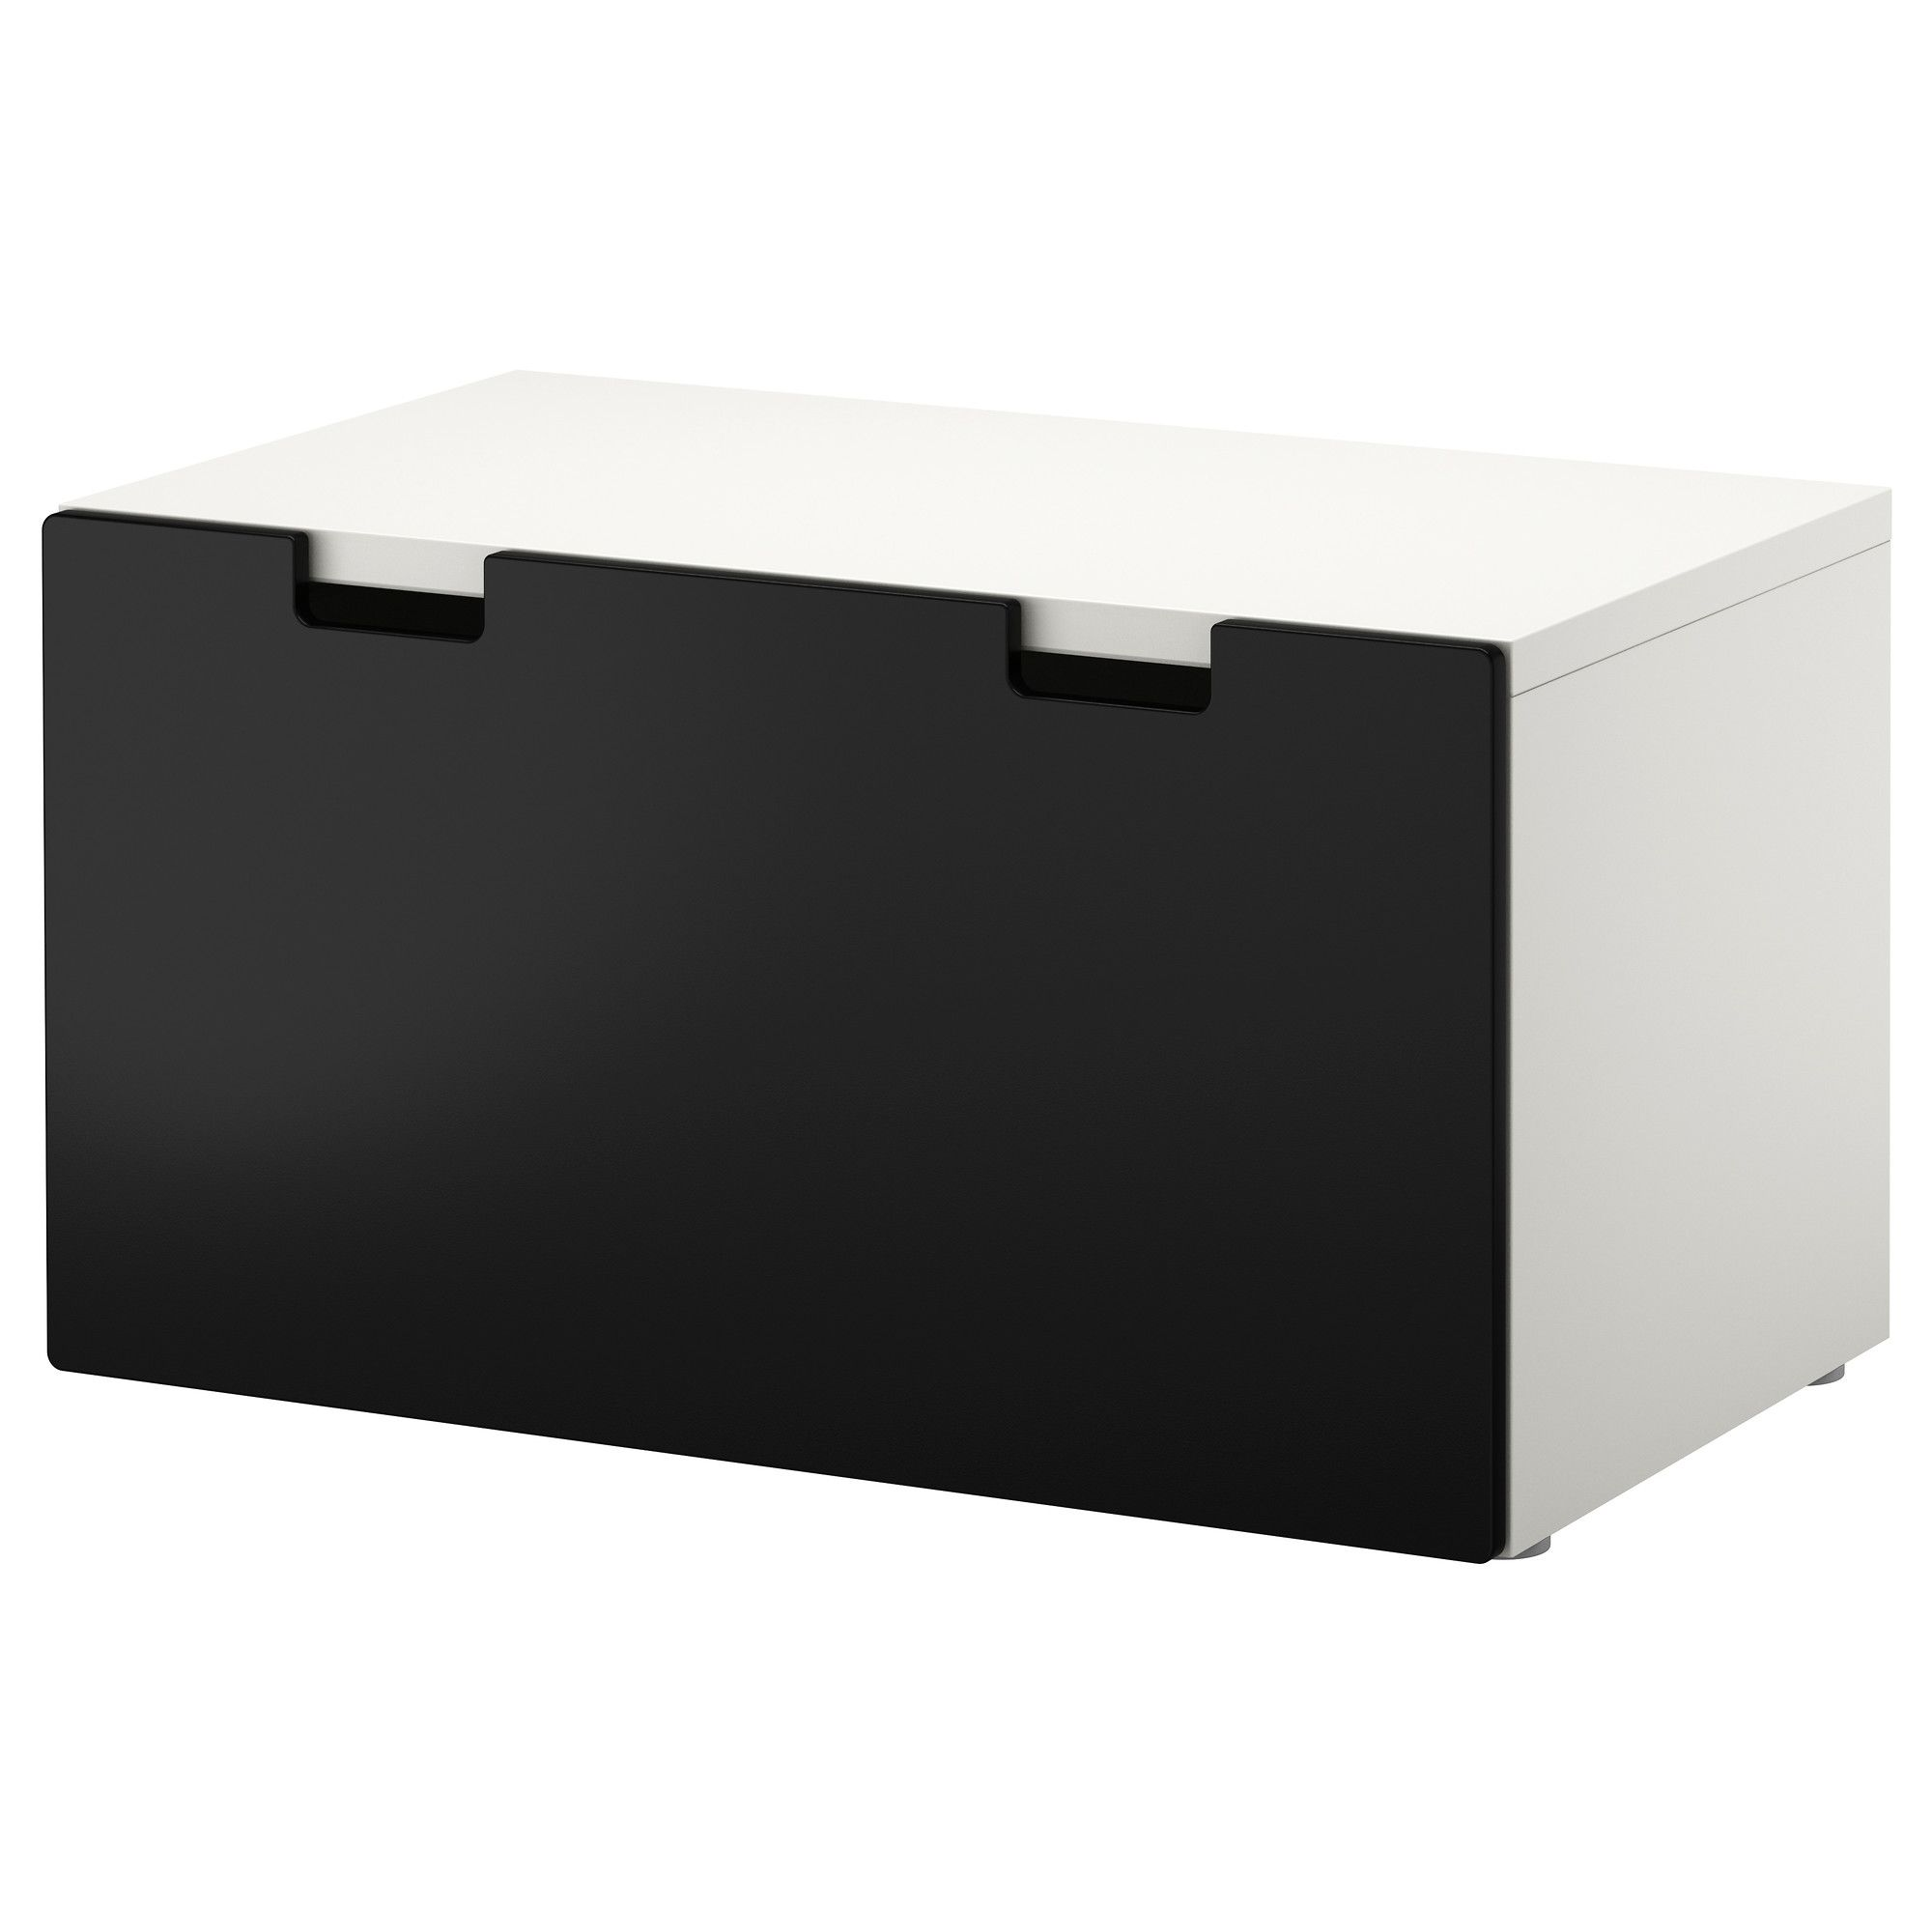 Fabulous Ikea Stuva Storage Bench White Black Low Storage Ocoug Best Dining Table And Chair Ideas Images Ocougorg